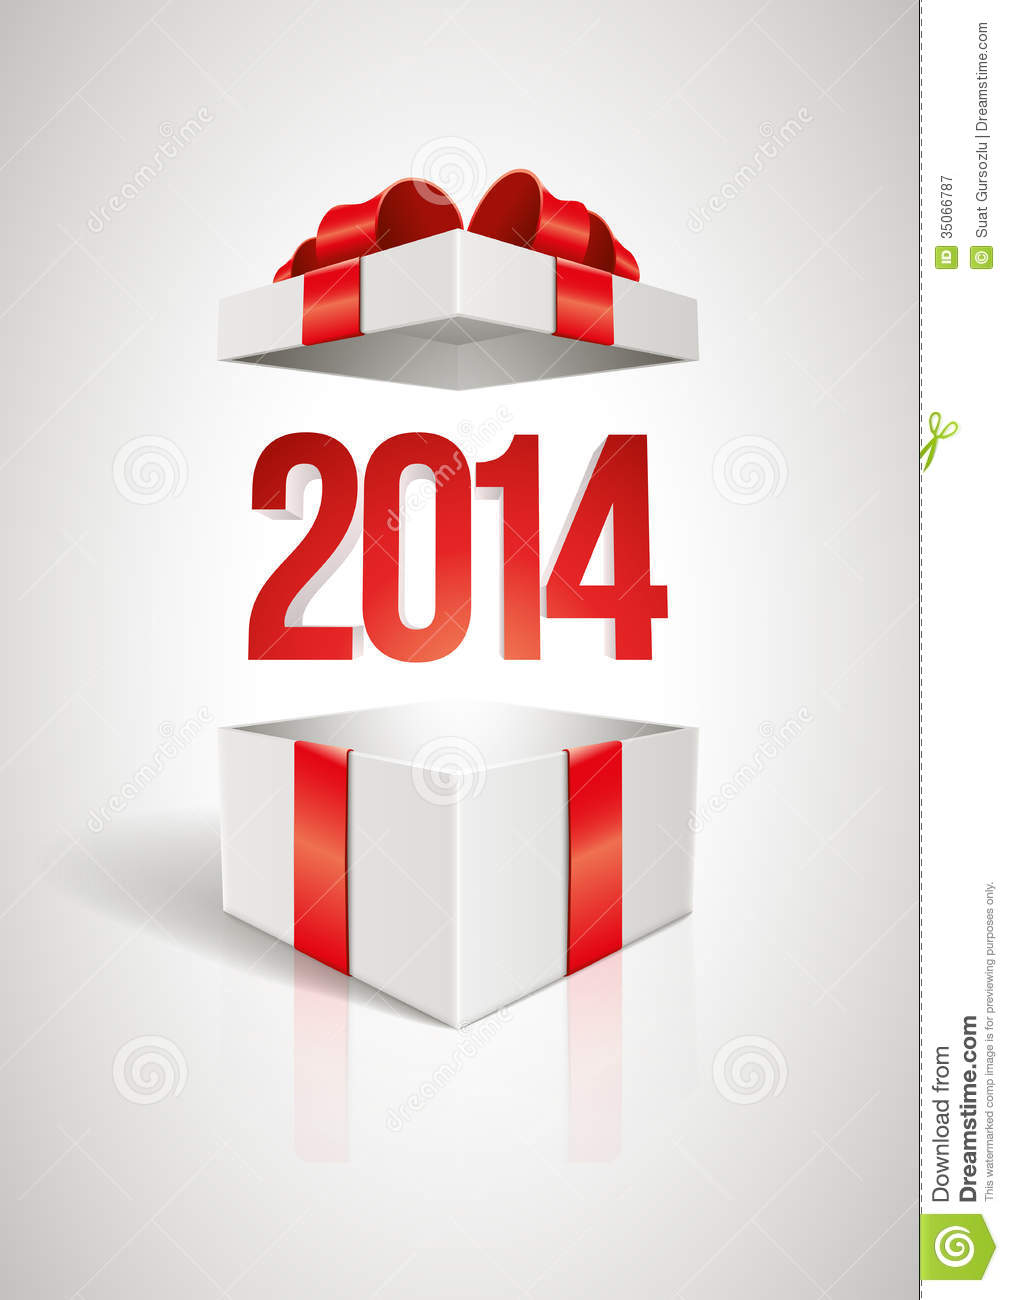 Vector Surprise 2014 Open Gift Box Design Template Elements Are Layered Separately In File